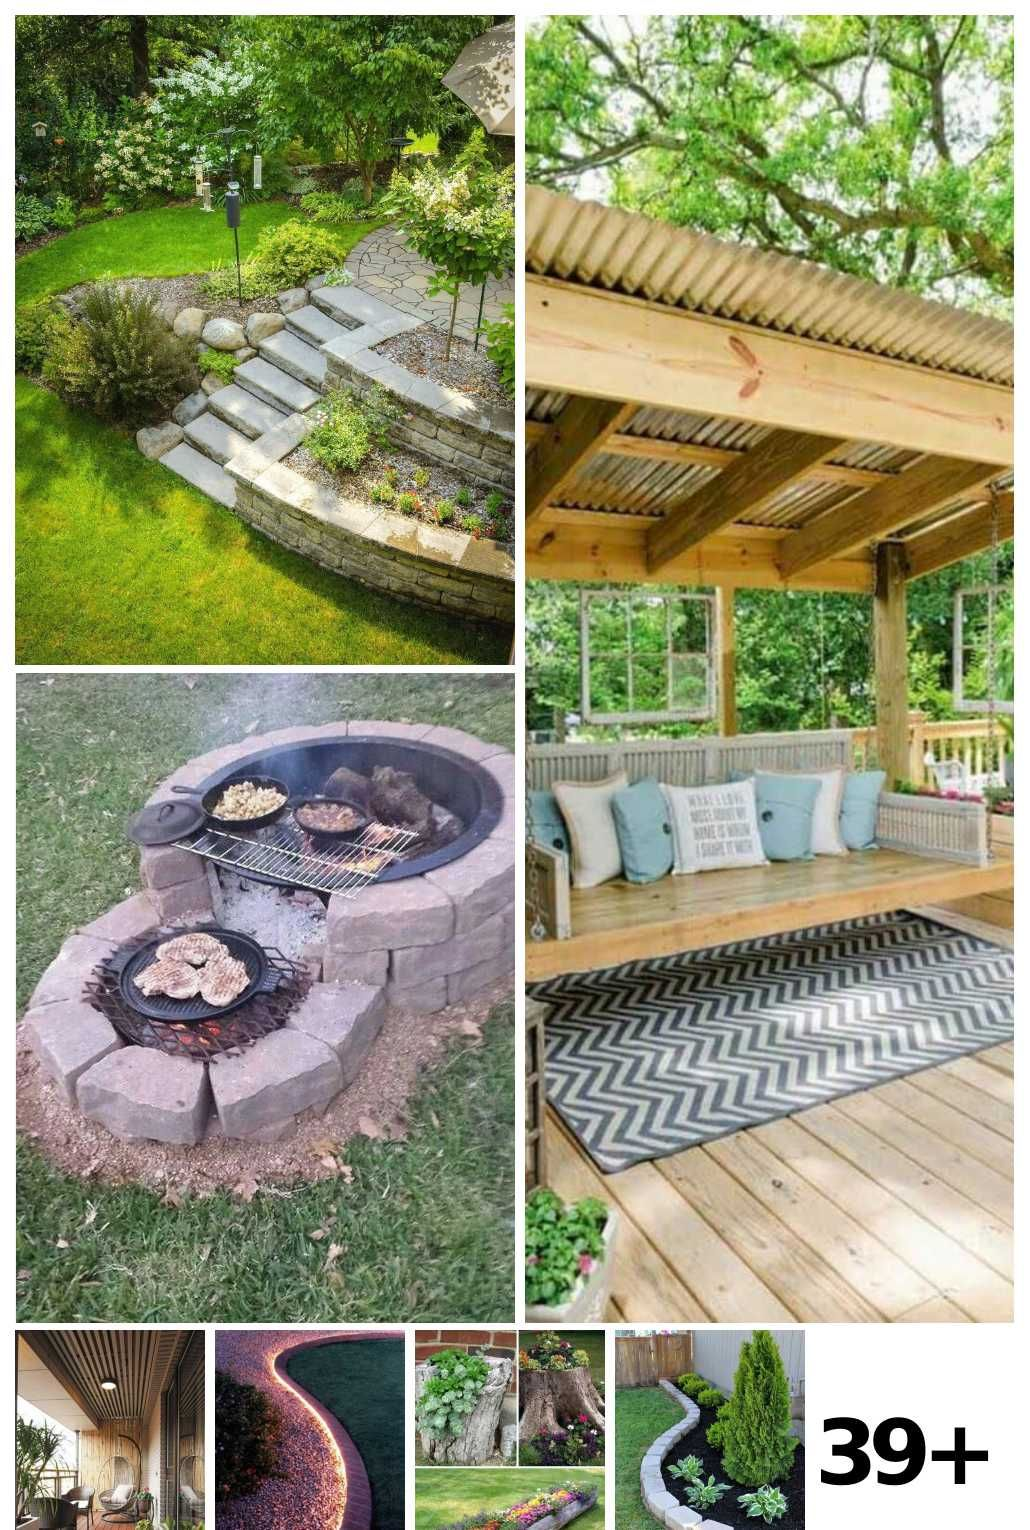 39 Backyard On A Budget Landscaping Ideas In 2020 Backyard Landscaping Budget Landscaping Backyard